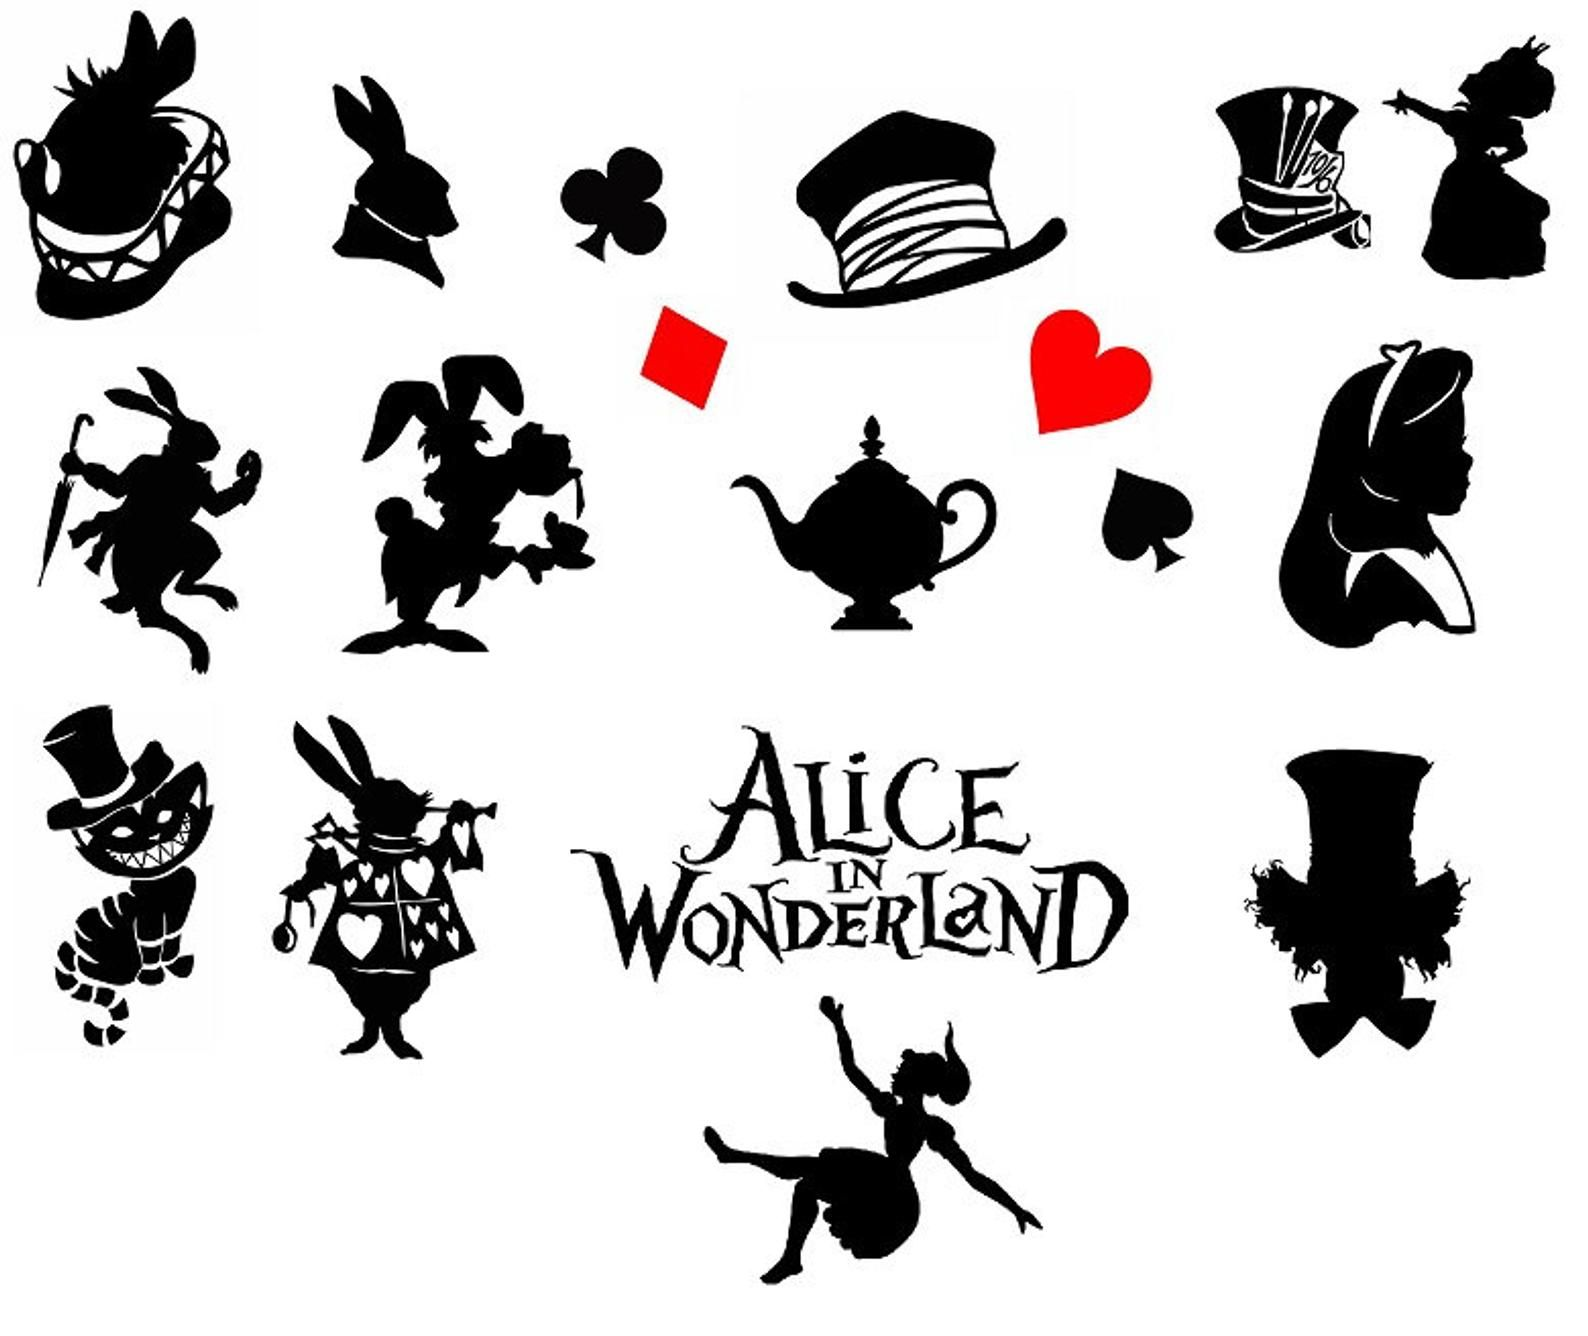 Pin on Mad hatter tea party